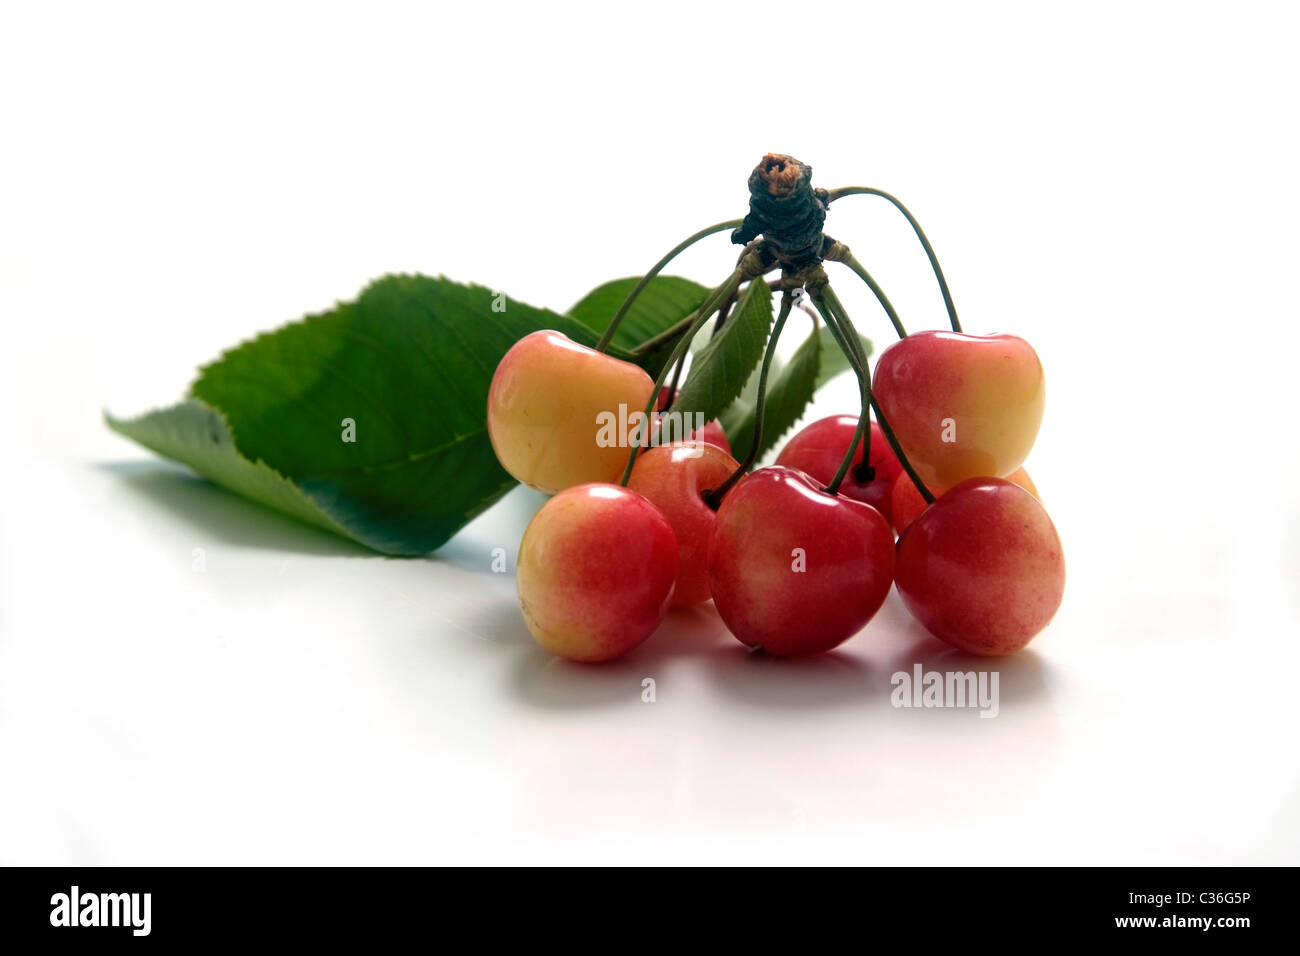 Cherry variety Porzellankirsche  with twig and leaves - Stock Image